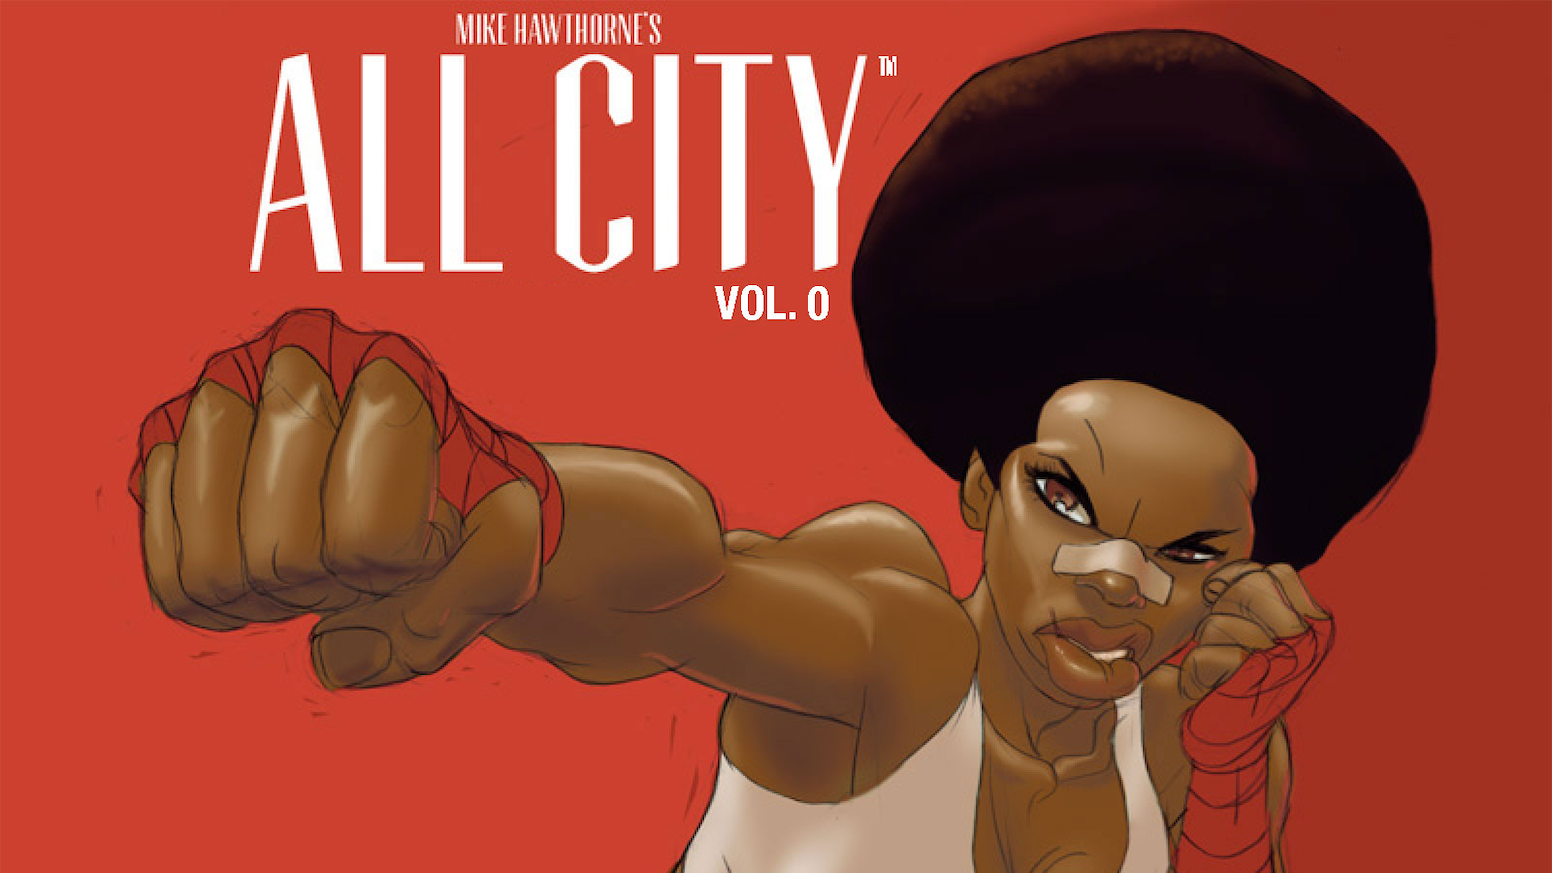 All City Volume Zero will be the first in a series of art books straight from the mind and hand of comic artist Mike Hawthorne.